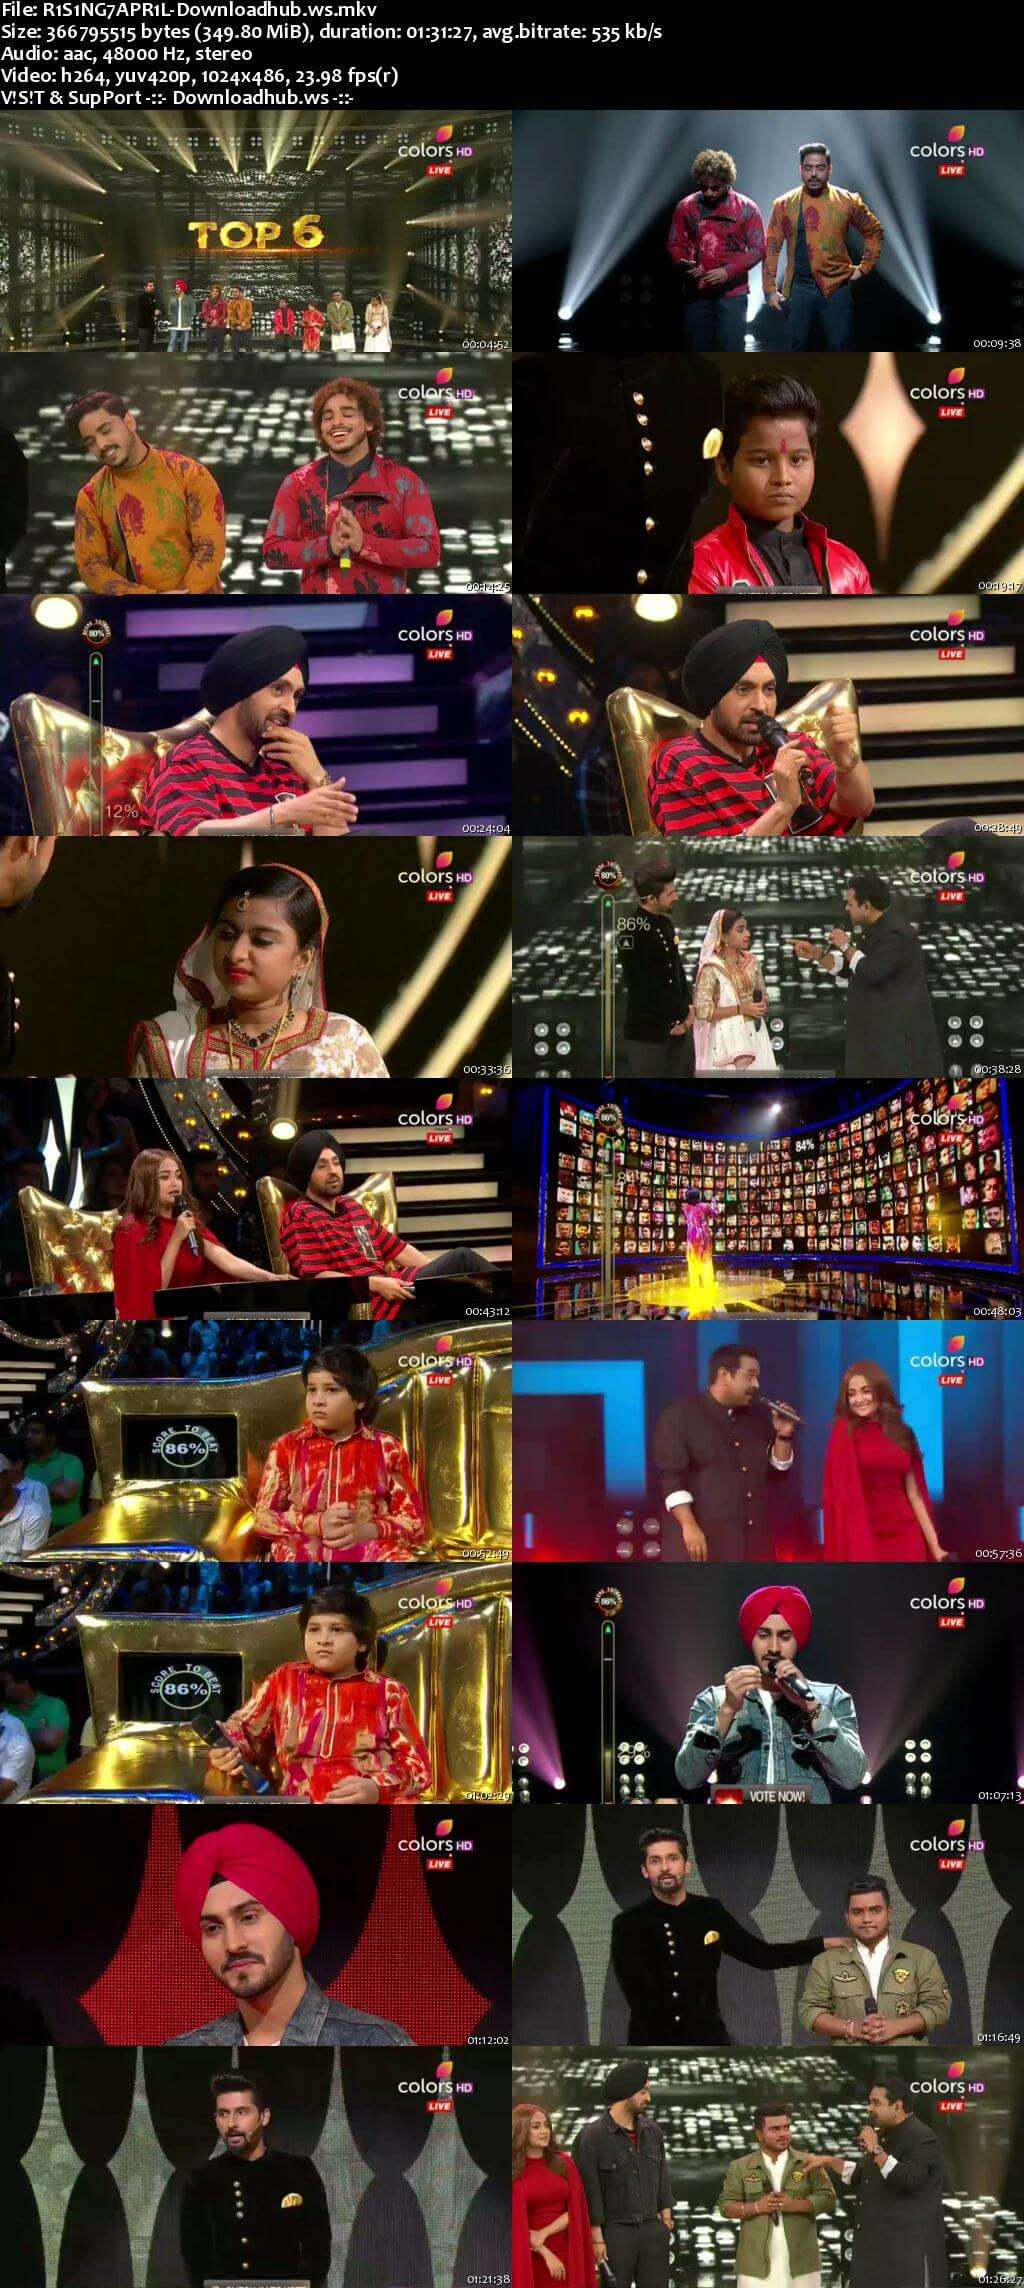 Rising Star Season 2 07 April 2018 Episode 22 HDTV 480p